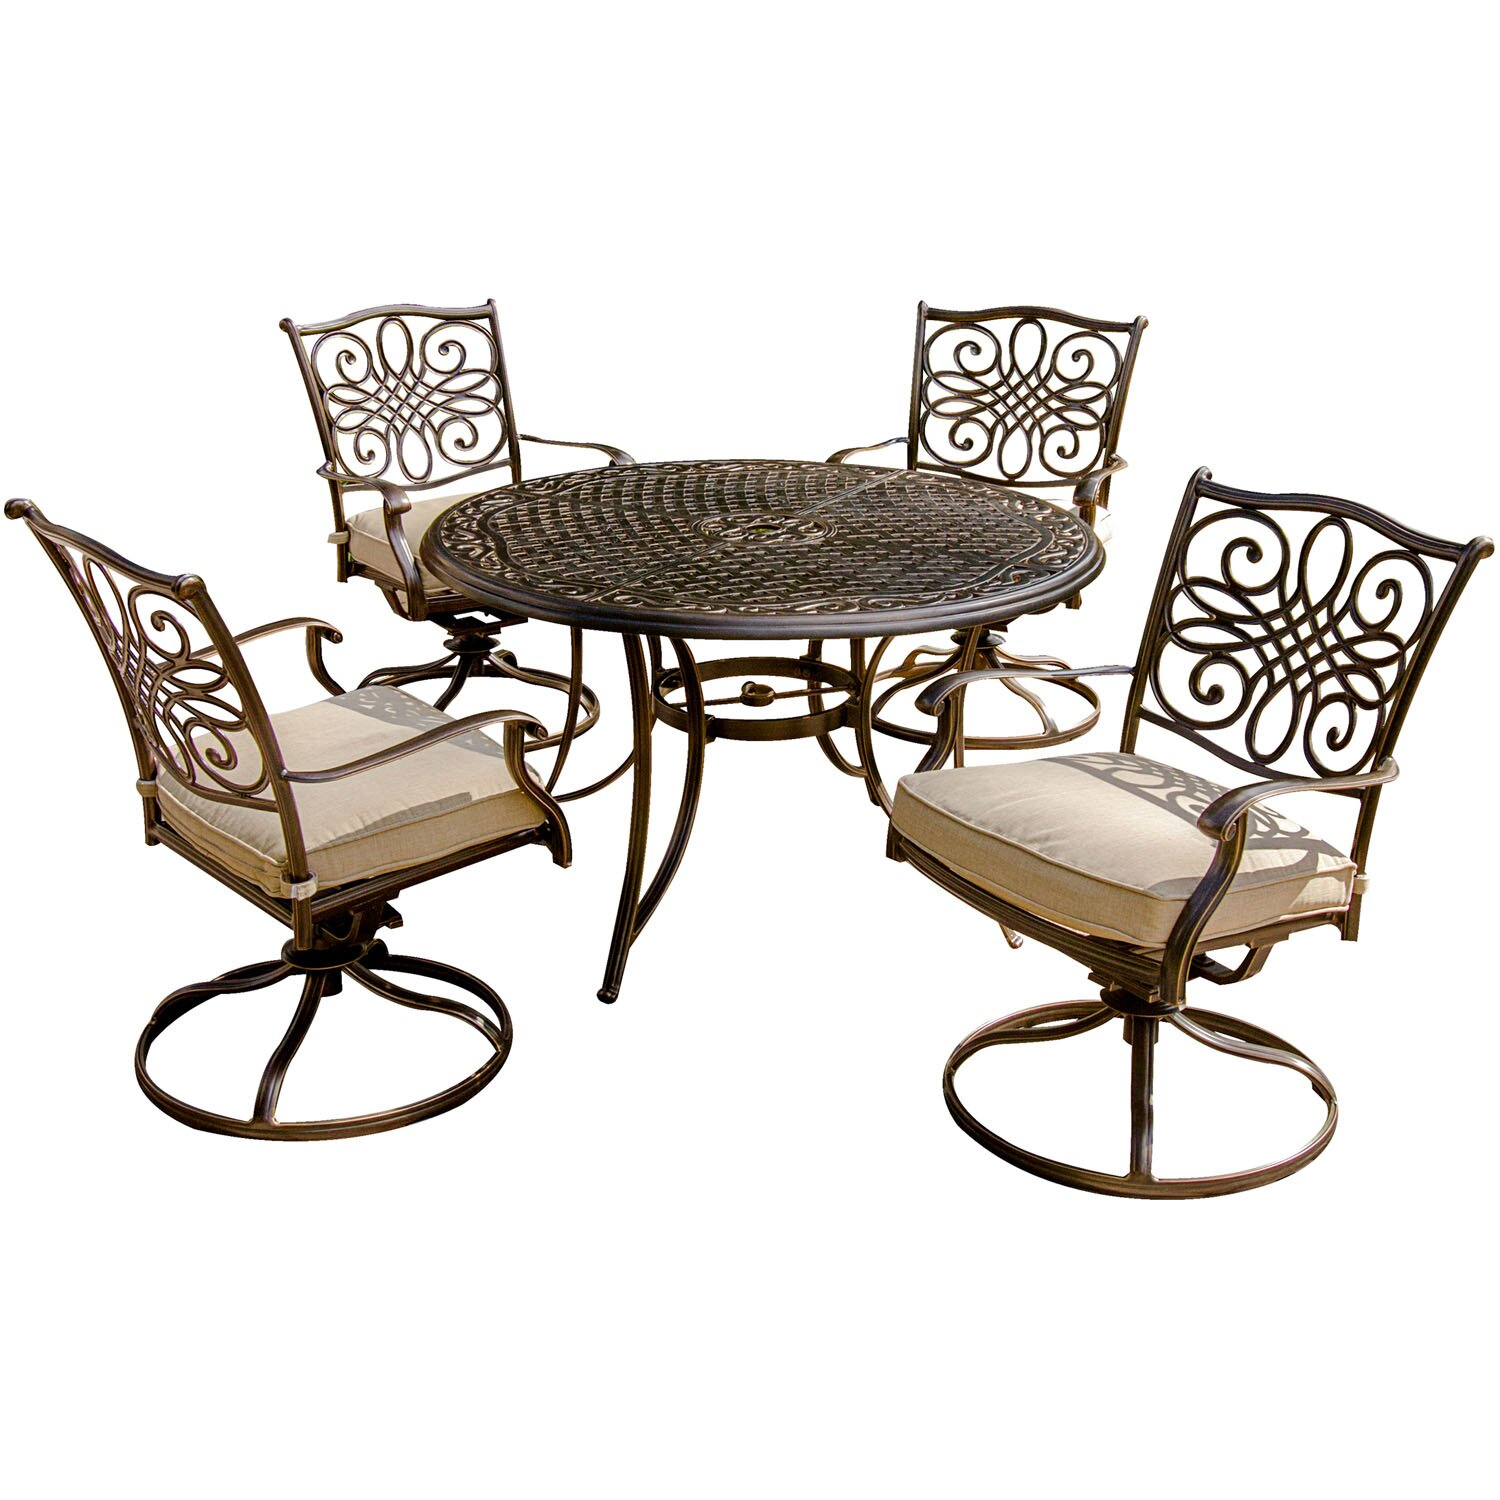 Stool Cushions Bed Bath Beyond picture on bed bath beyond patio furniture sets with Stool Cushions Bed Bath Beyond, sofa feae0413efdc4949d00150a4bcb4d4b1